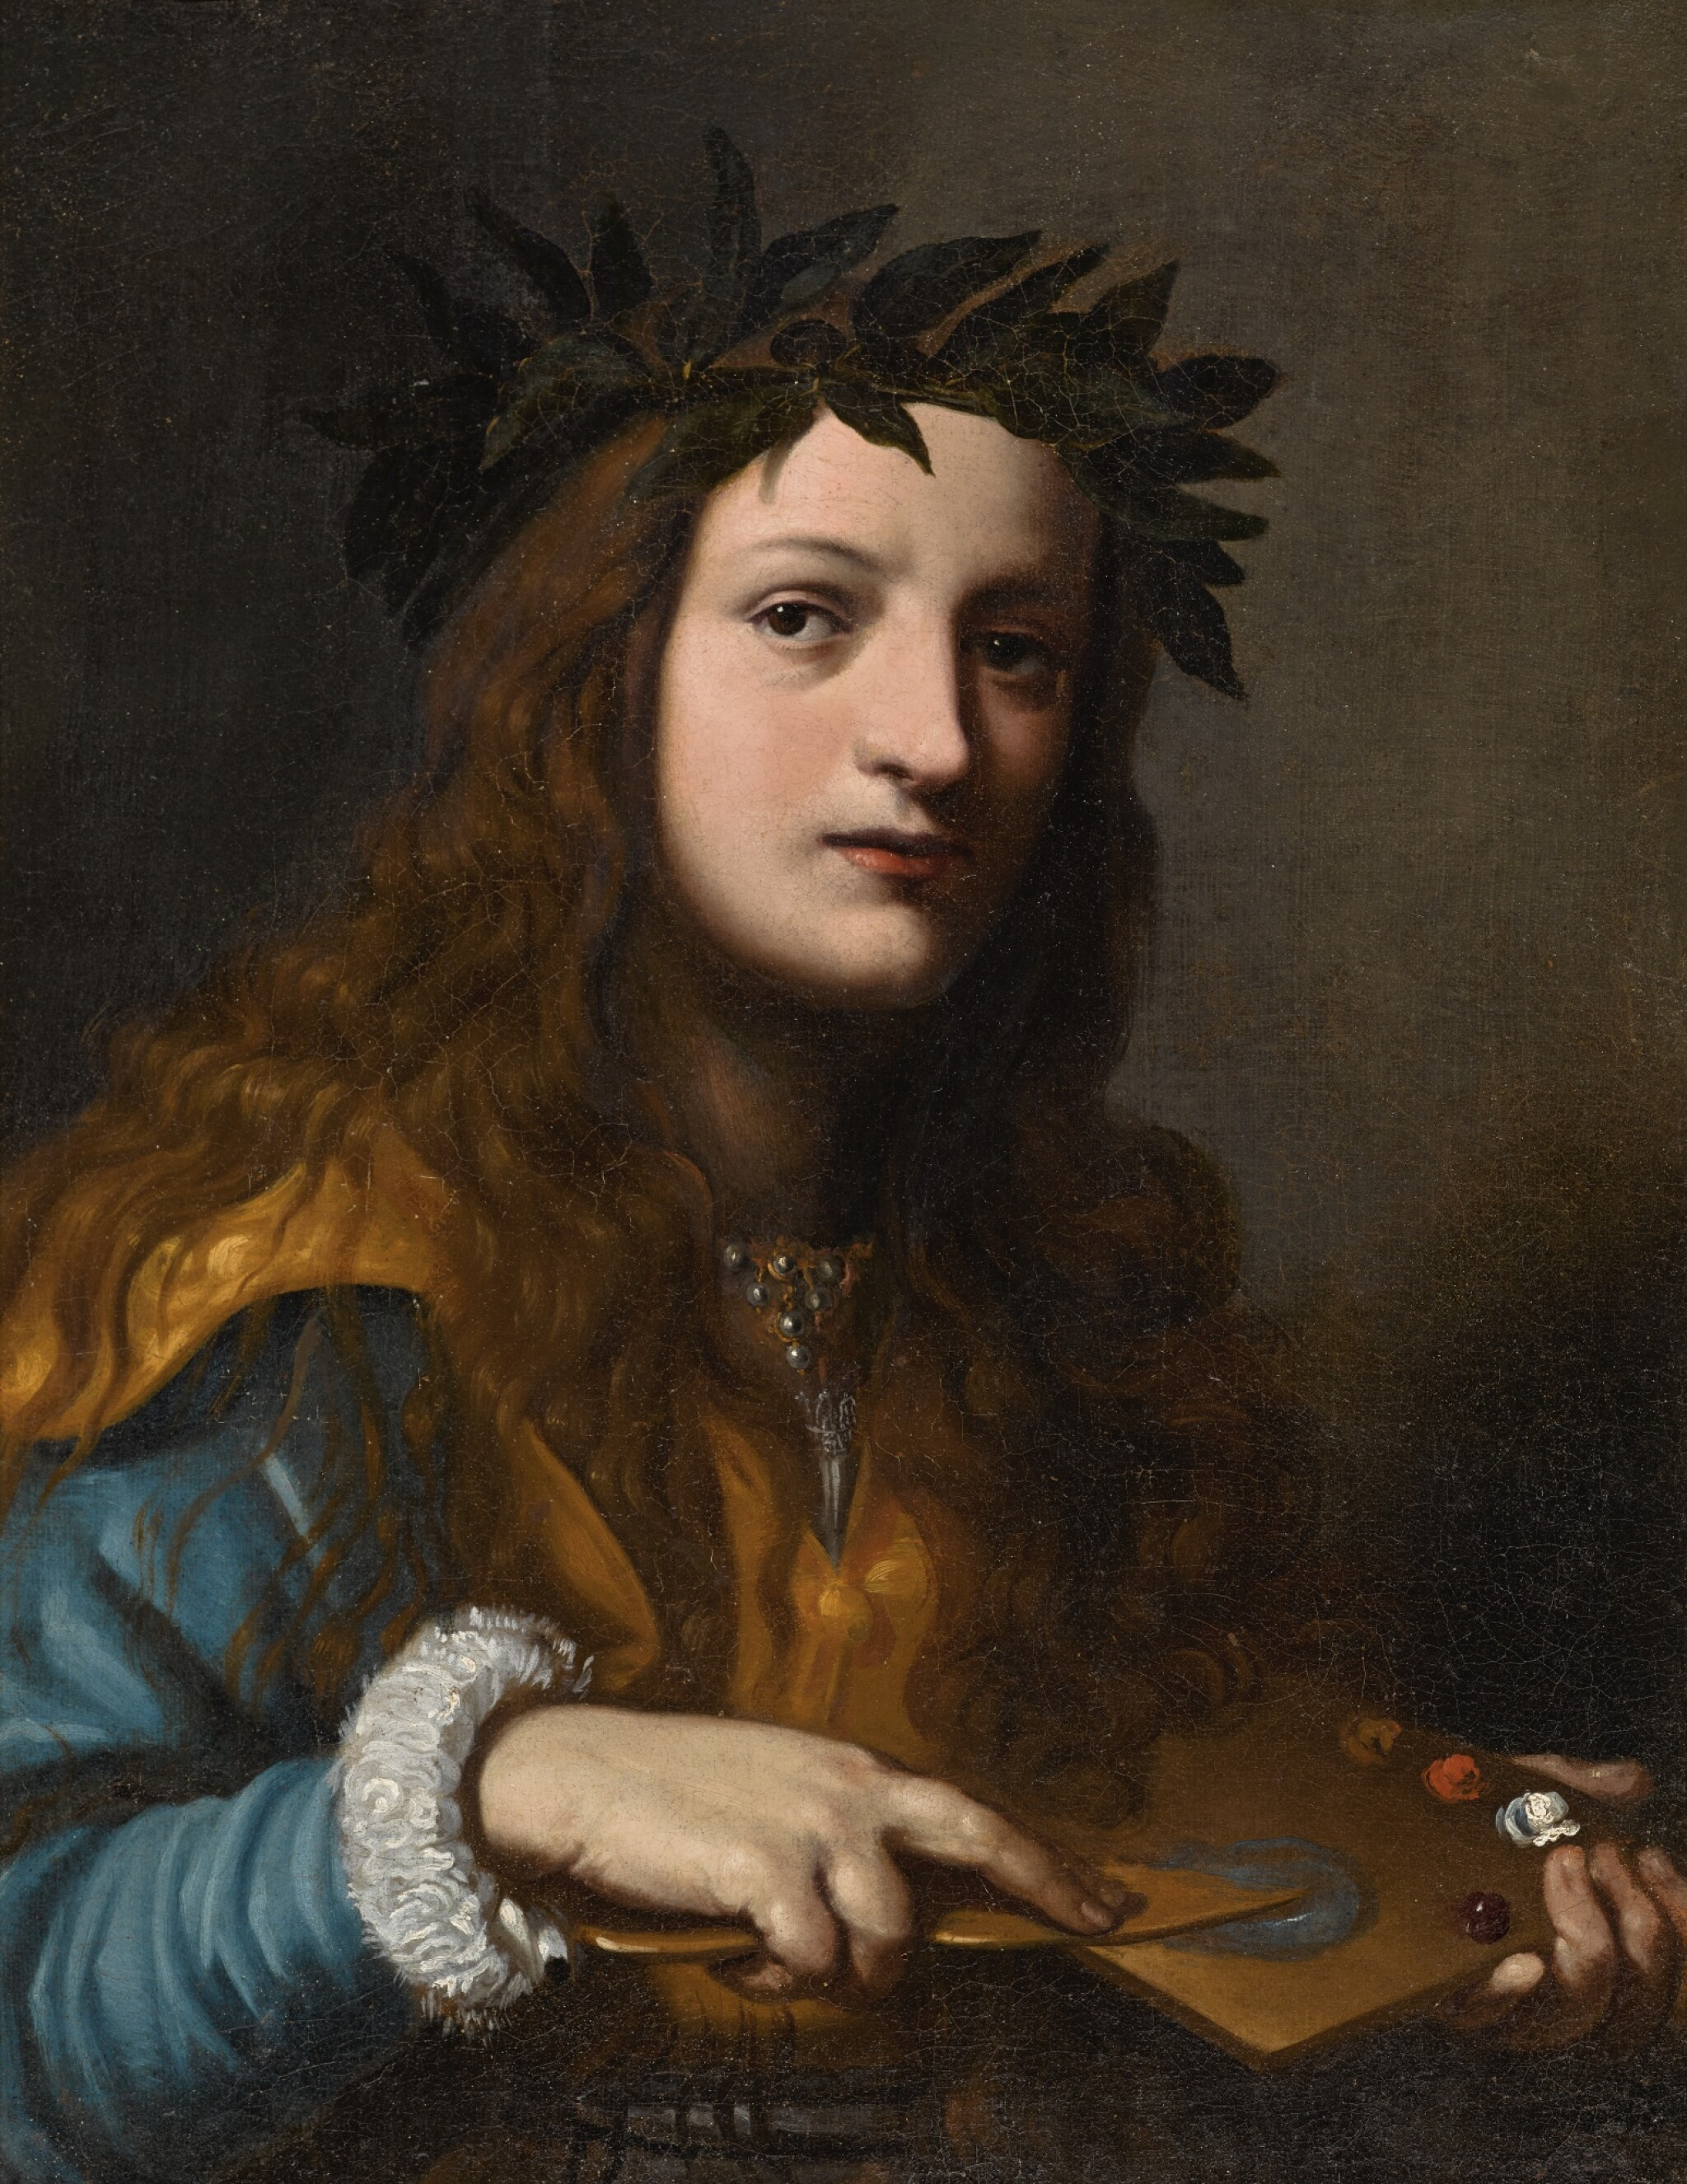 FRANCESCO LUPICINI |  Allegory of Painting